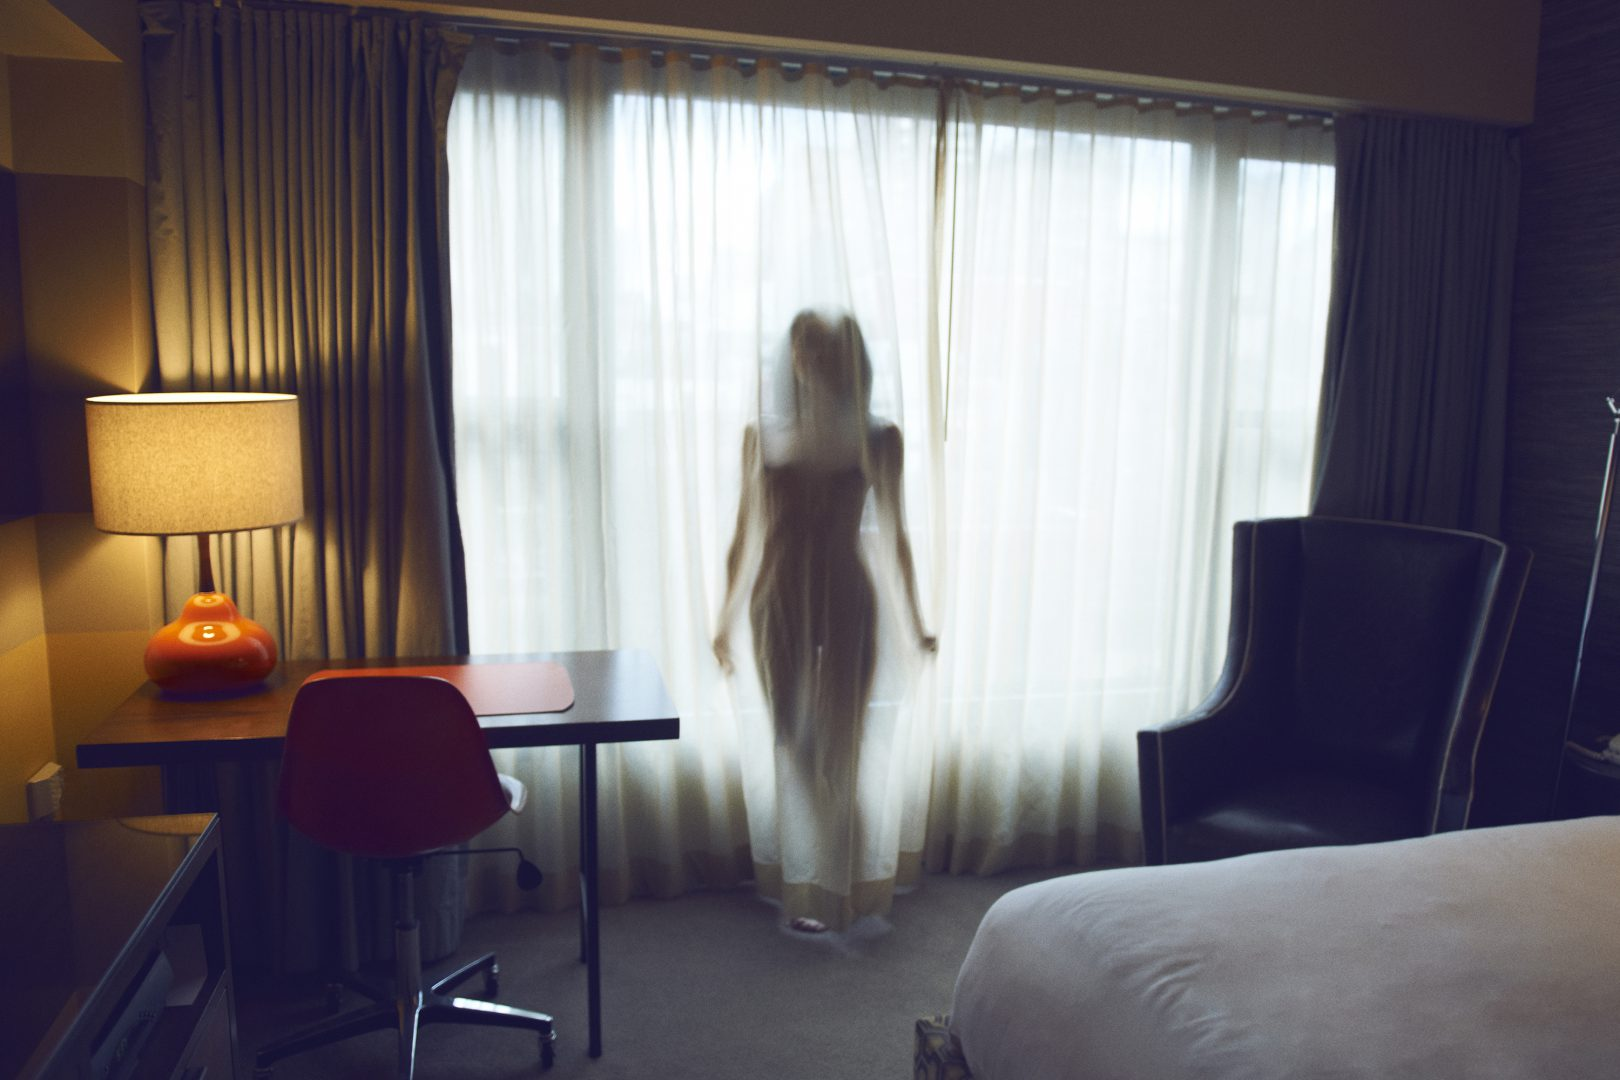 naked girl behind curtain by stefan rappo